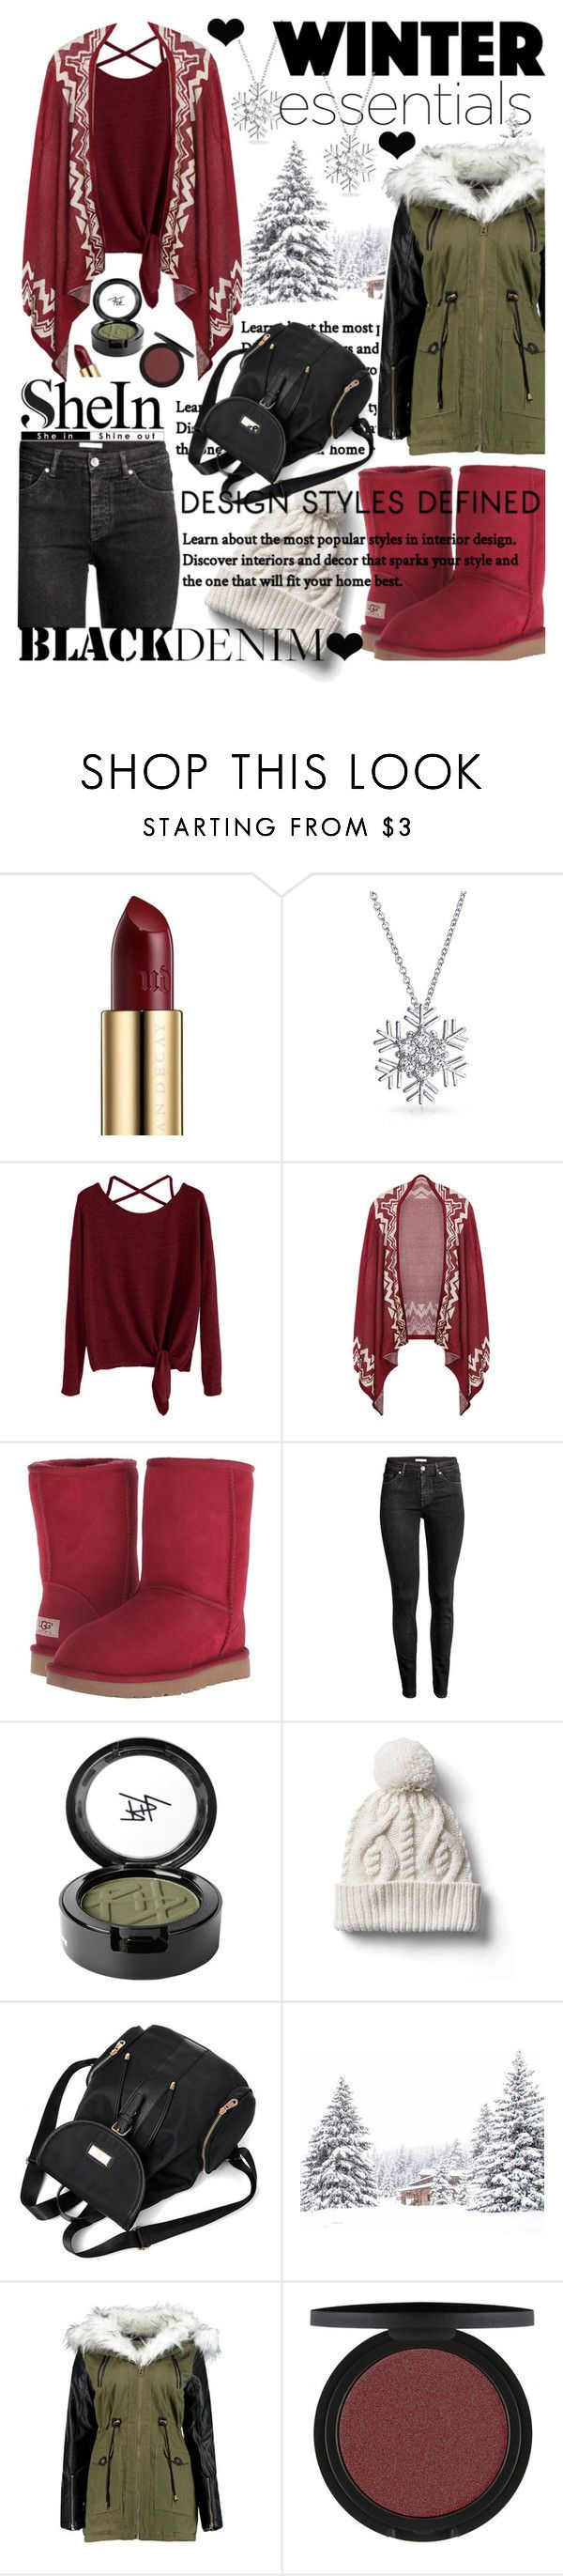 """Burgundy Drop Shoulder T-Shirt with SheIn!"" by anin-kutak ❤ liked on Polyvore featuring Urban Decay, Bling Jewelry, UGG Australia, H&M, Beauty Is Life and Gap"